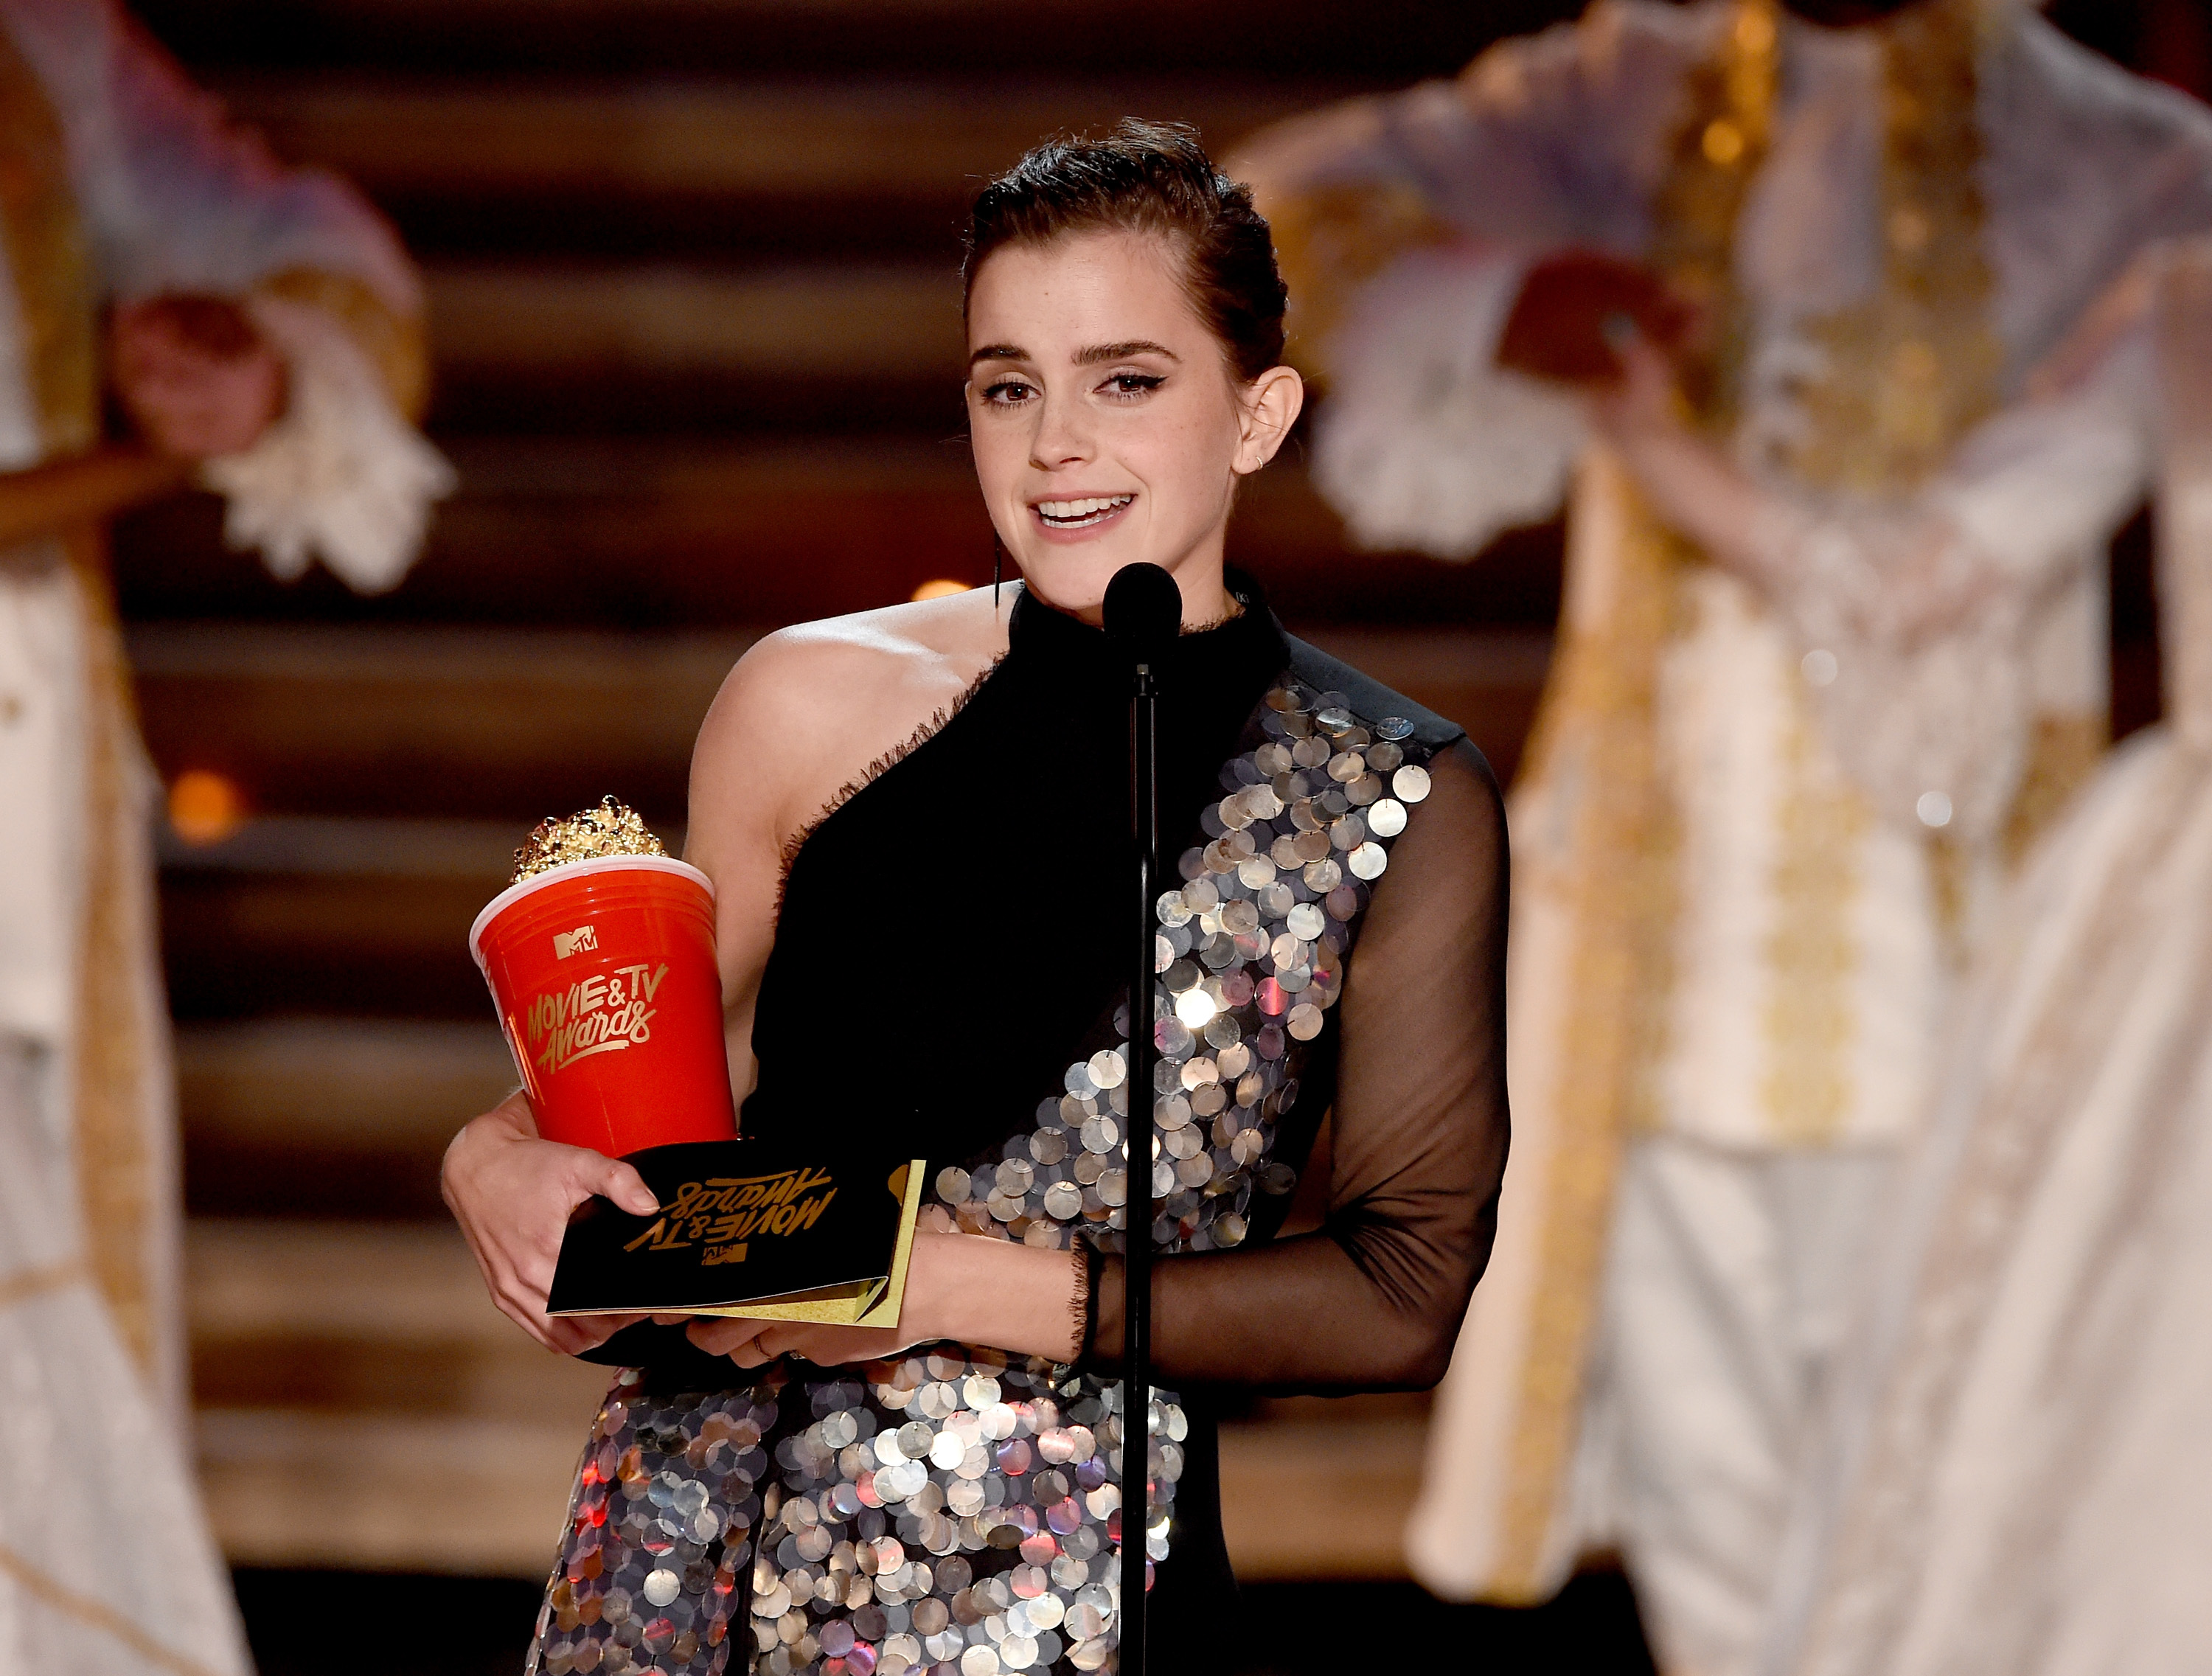 Emma Watson accepts the award for Best Actor in a Movie onstage during the 2017 MTV Movie And TV Awards at The Shrine Auditorium on May 7, 2017.